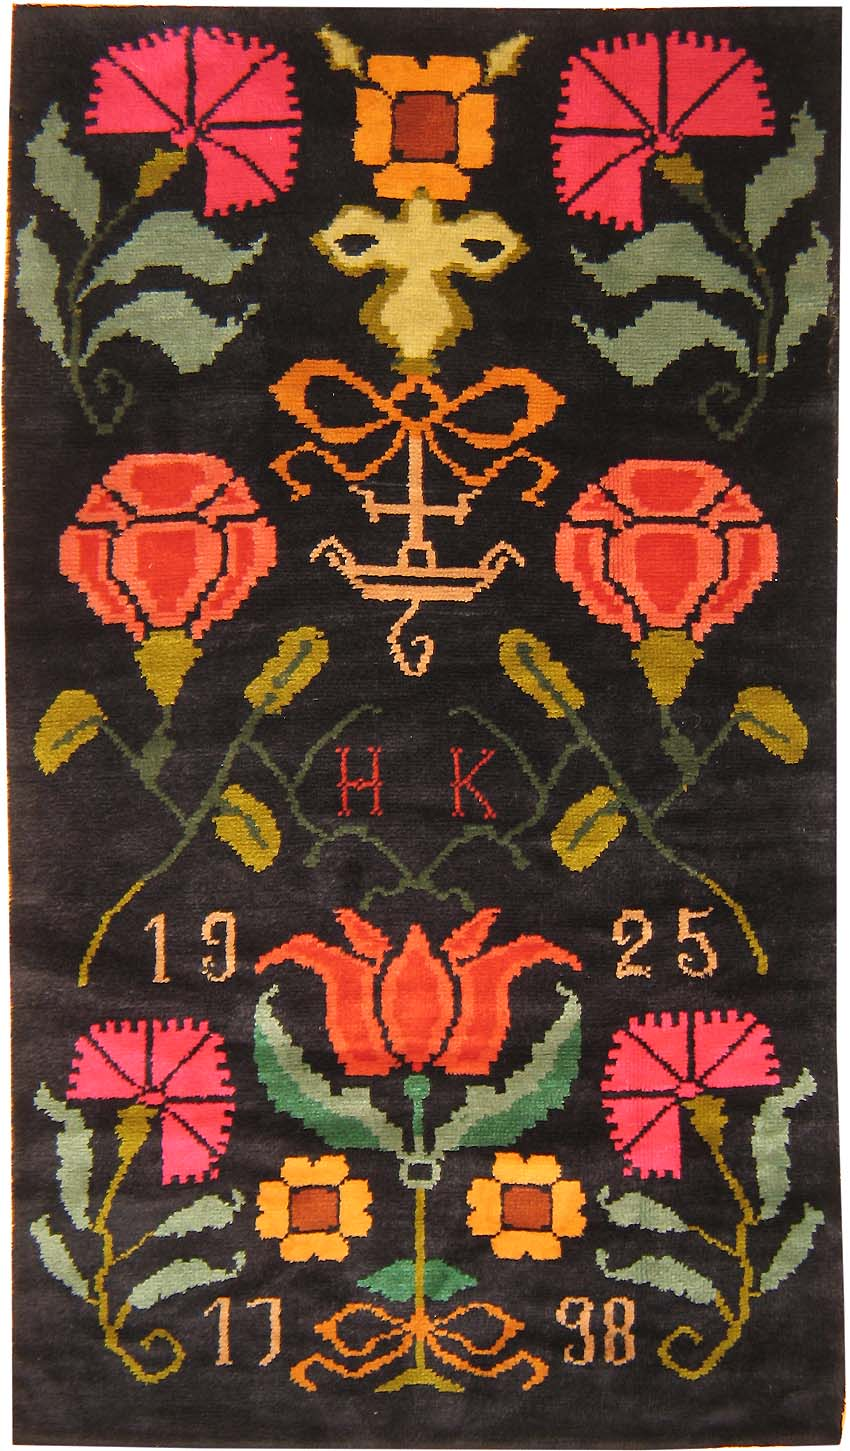 Antique_Scandinavian_Rugs_420042.jpg